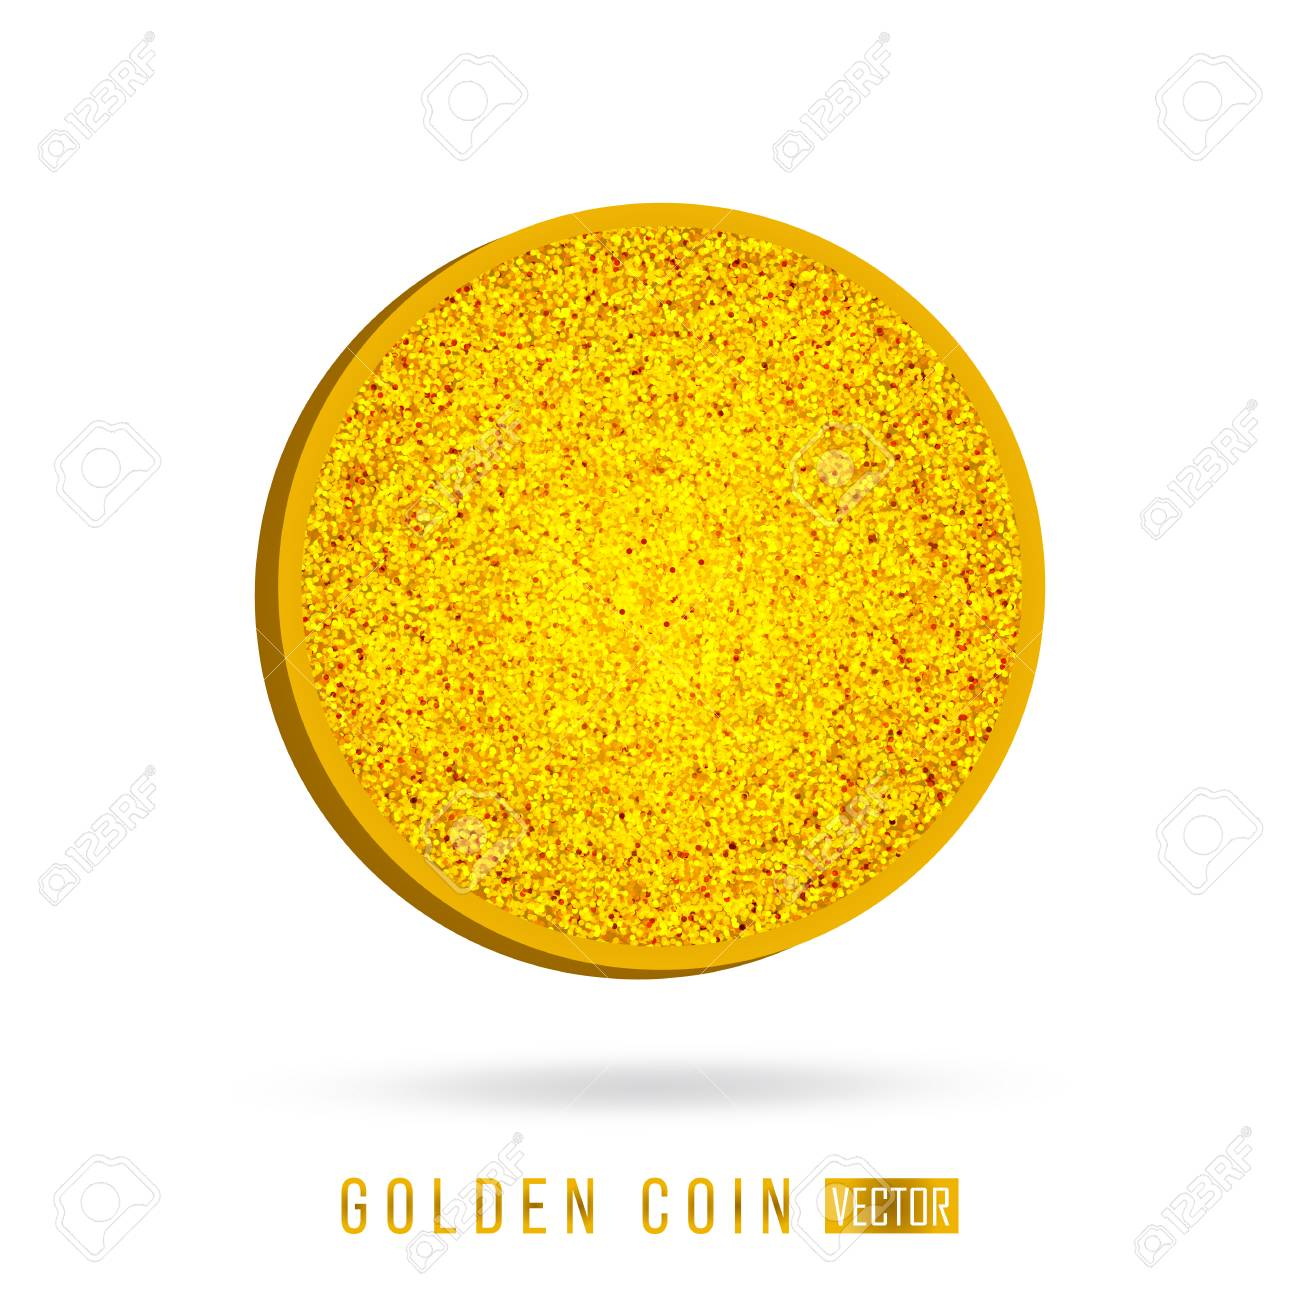 a gold coin vector icon illustration blank design template royalty